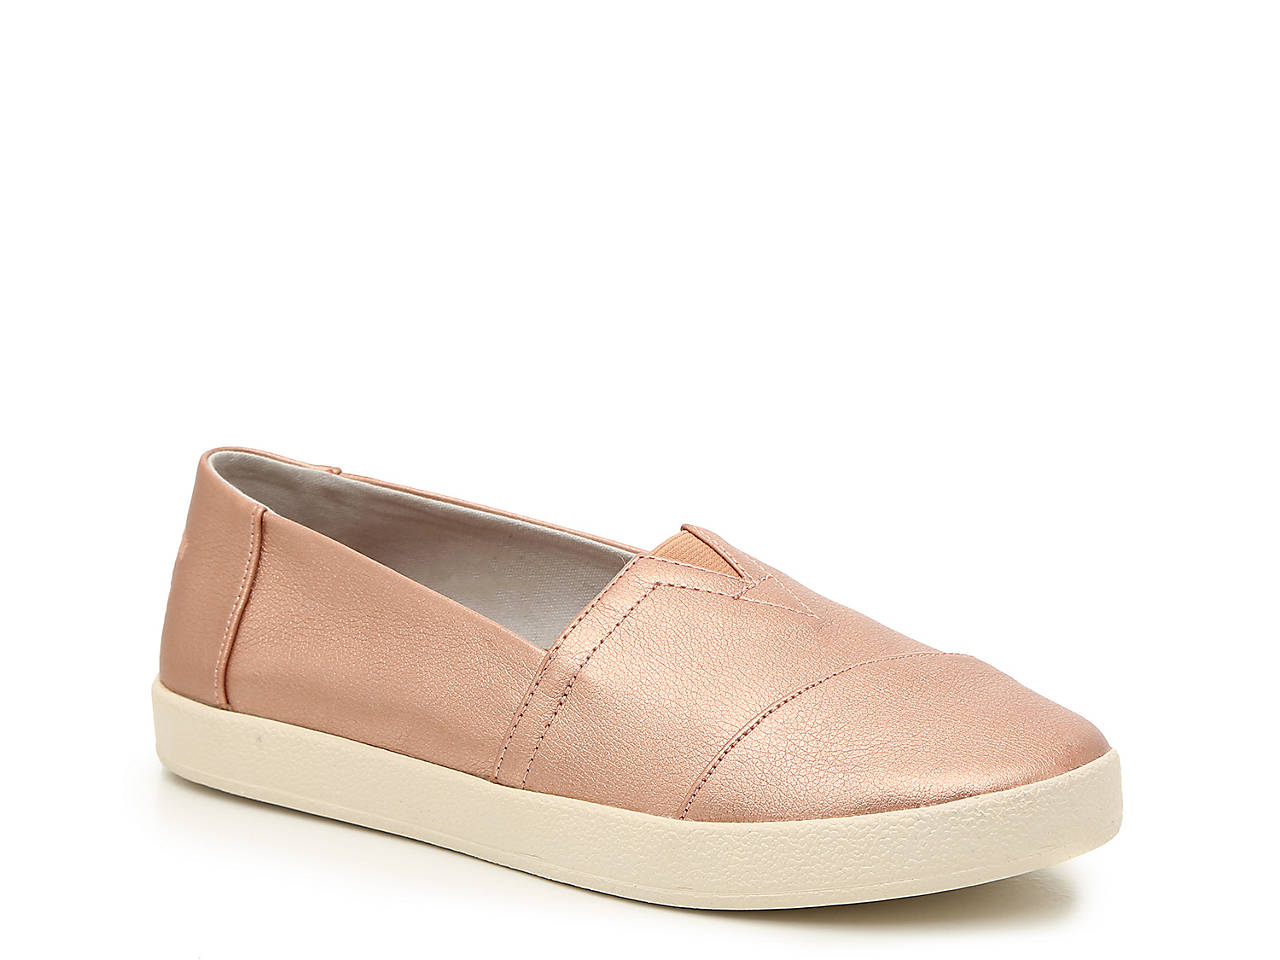 f9789012e0f TOMS Avalon Slip-On Sneaker Women s Shoes